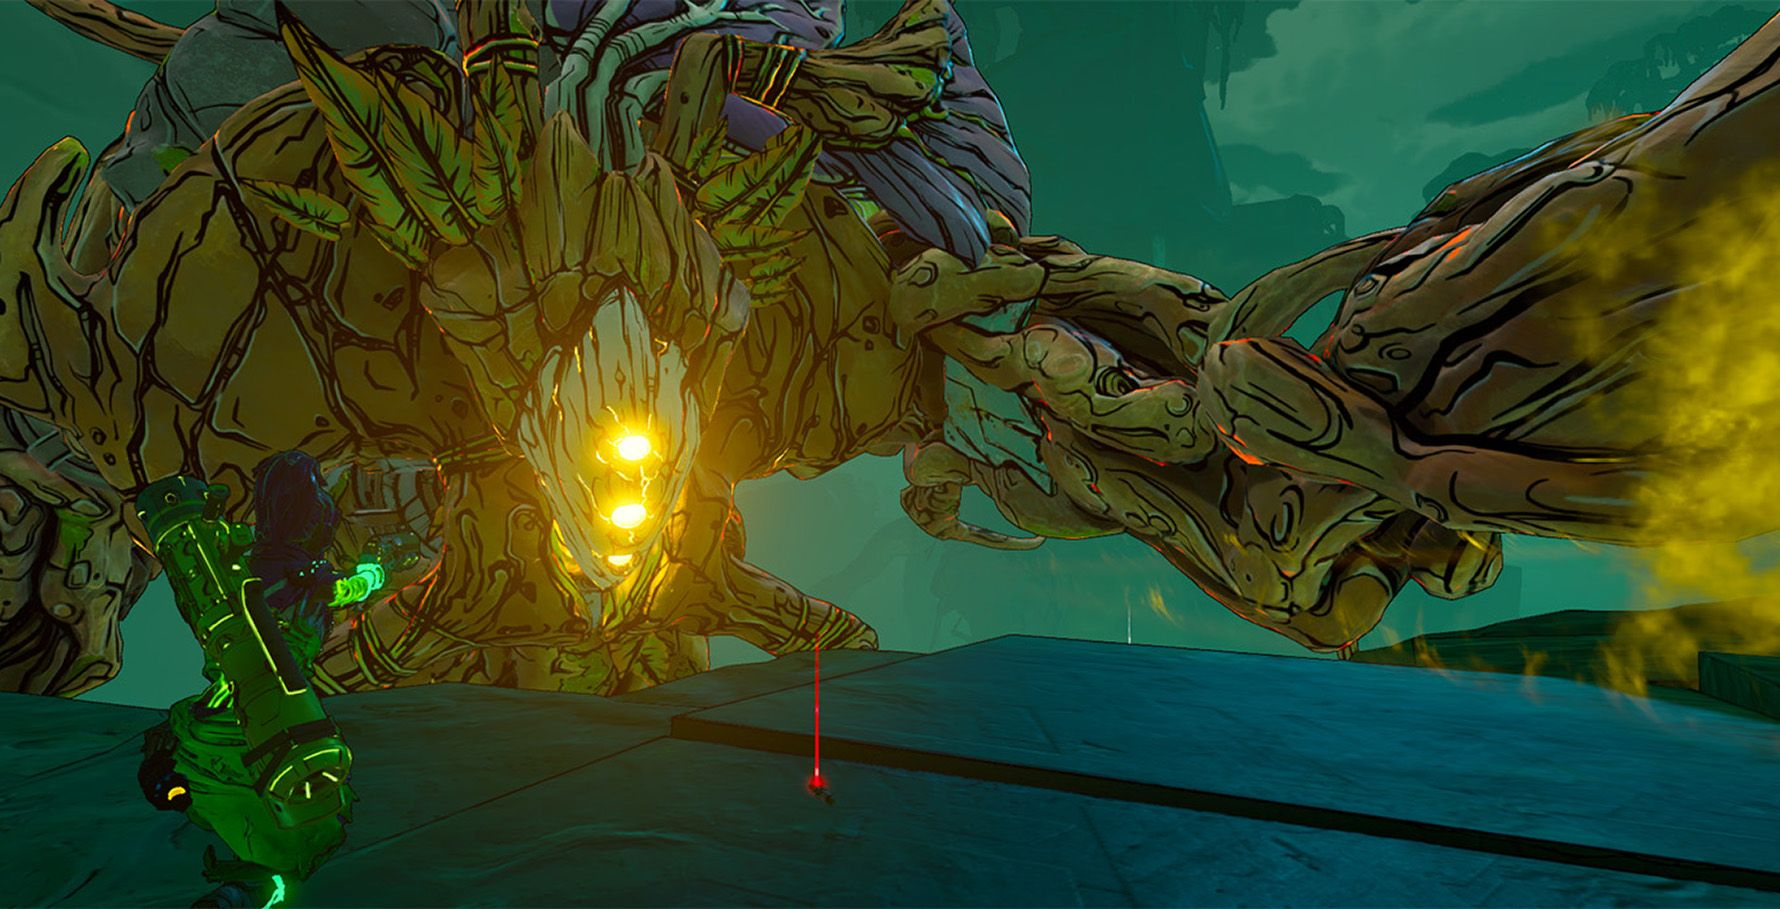 Borderlands 3: 10 Best Ways To Grind Out The Good Stuff